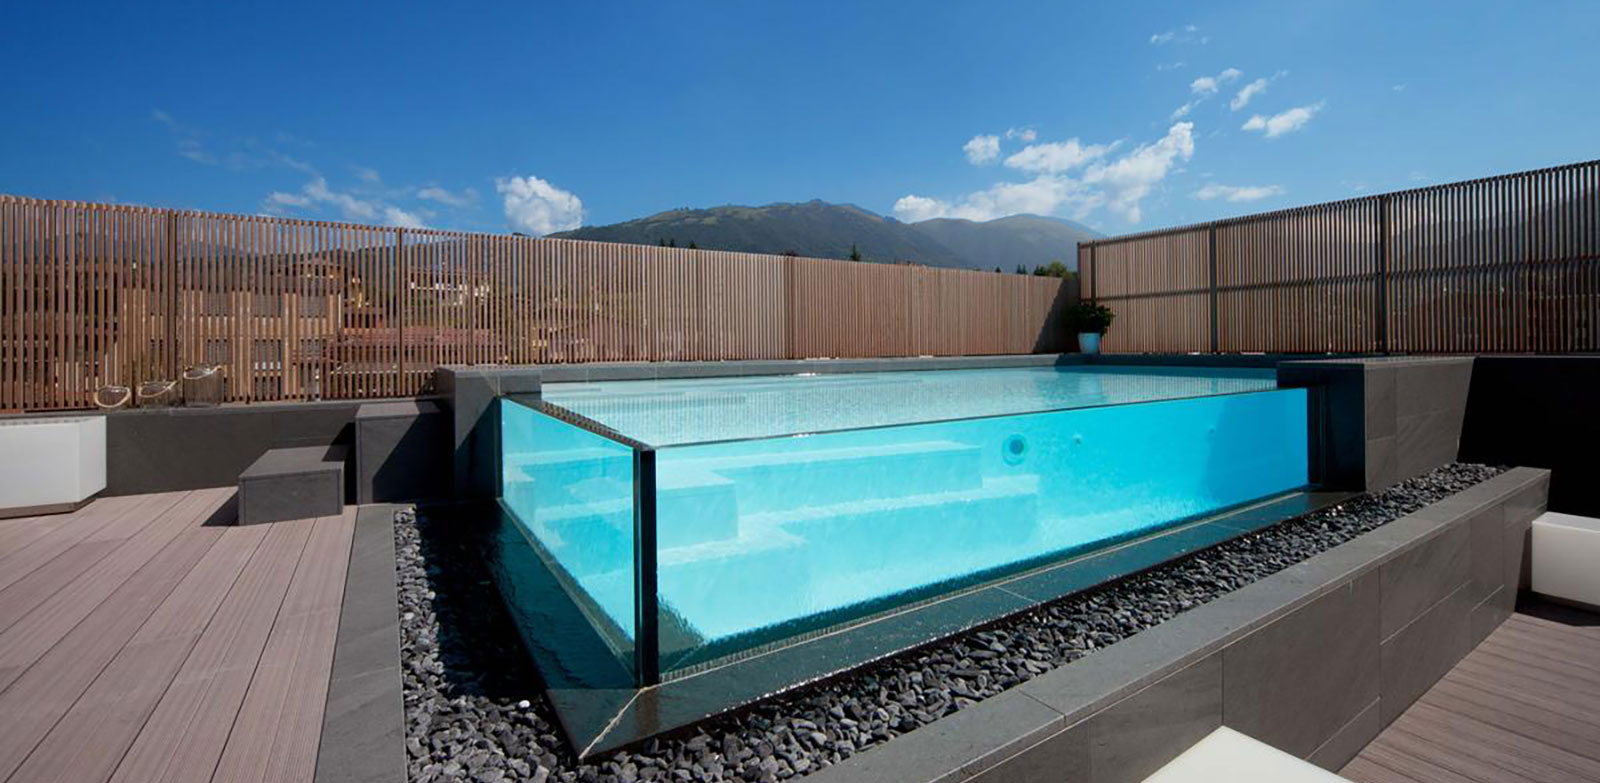 Good piscine bordo sfioro crystal with immagini piscine - Piscine intex usate ...